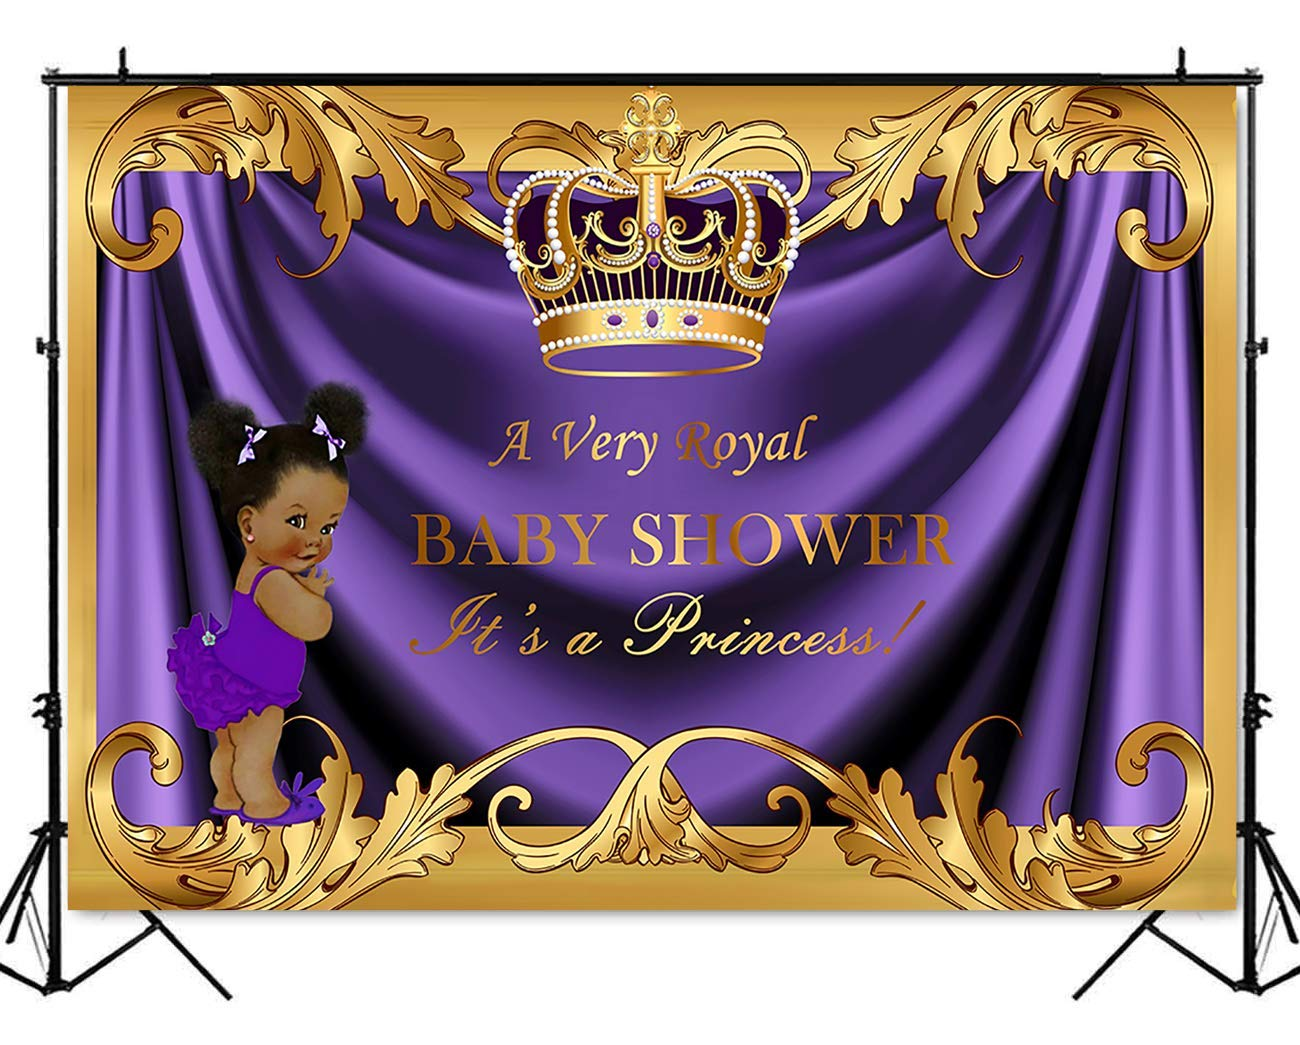 Mehofoto Royal Baby Shower Backdrop Little Girl Princess Purple Gold Photography Background 7x5ft Poly Cotton Royal Baby Shower Party Banner Backdrops